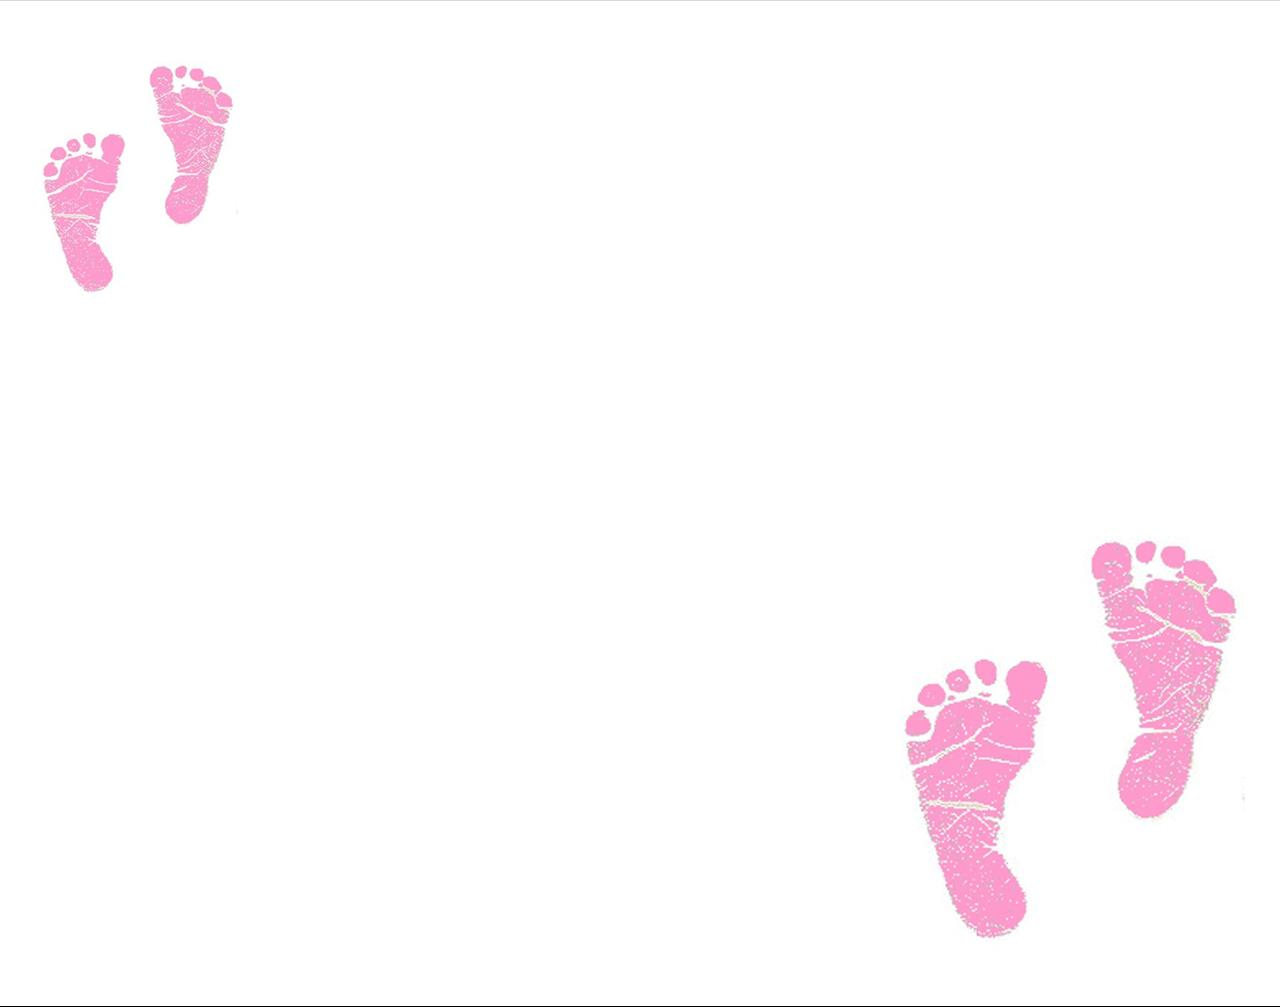 Footprint Border Clipart - Clipart Suggest